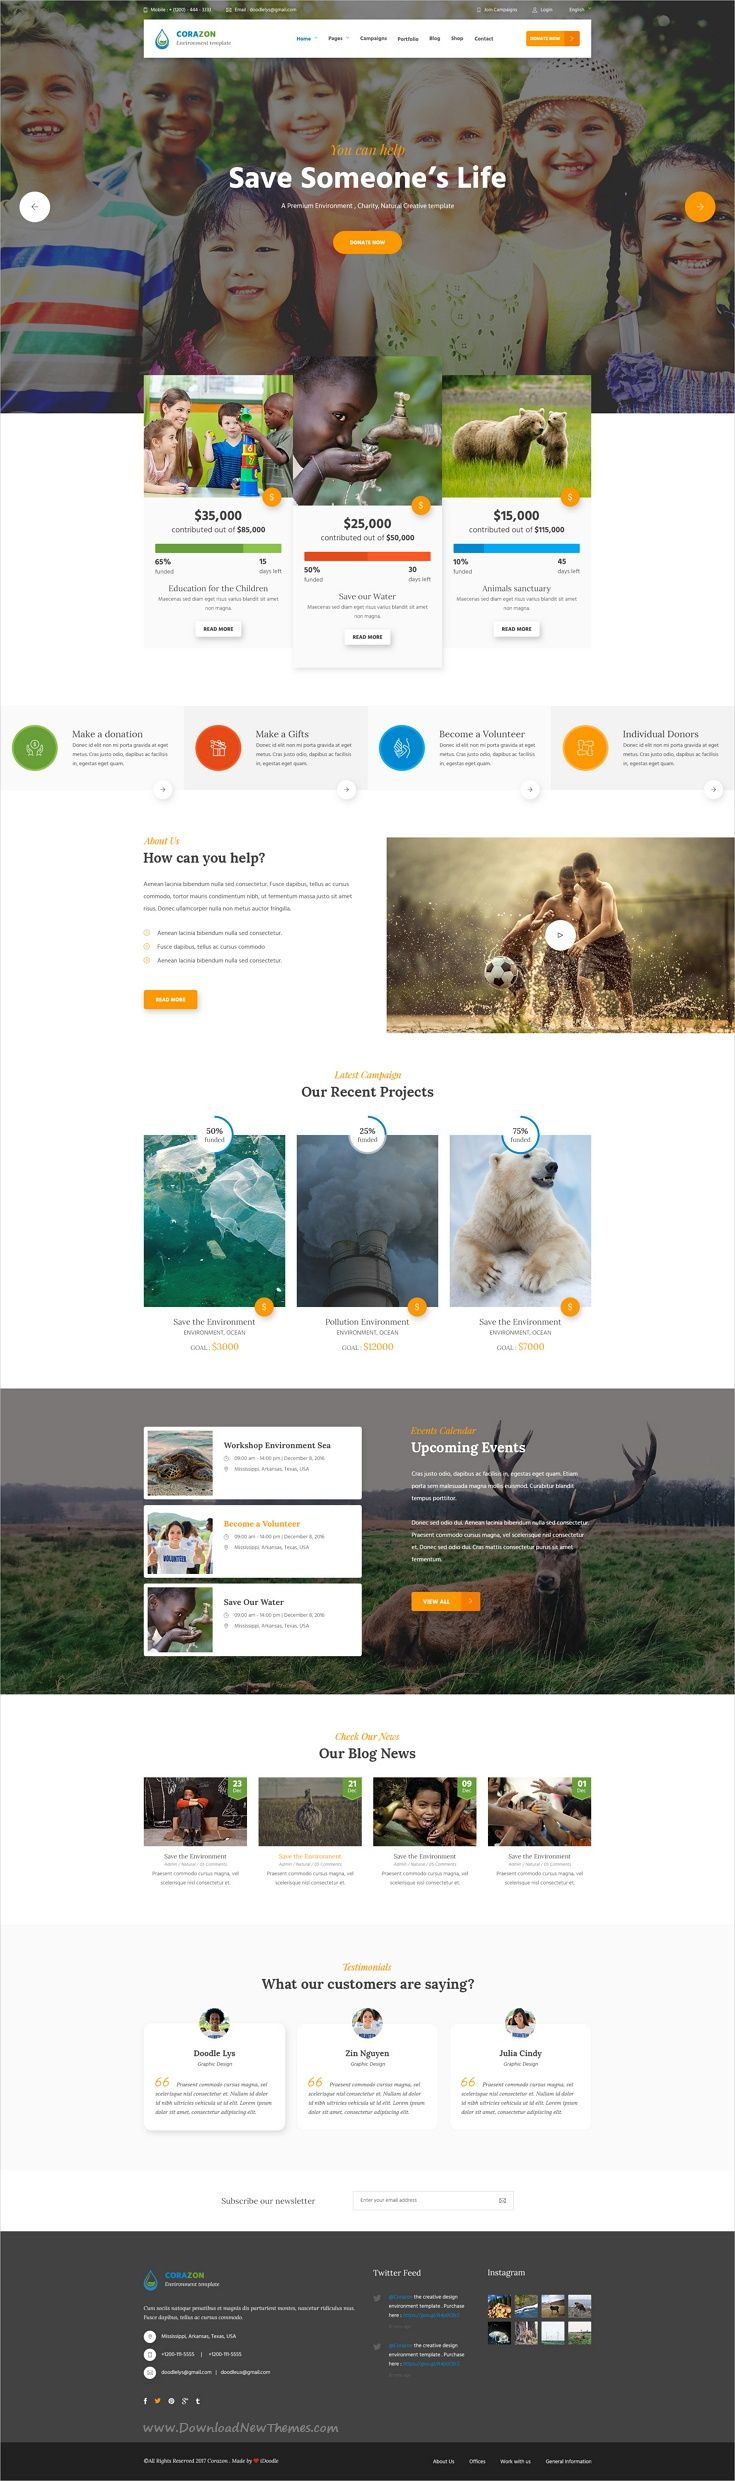 Corazon is a wonderful PSD template for #environment, #charity, non-profit #organization, donation, church or fundraising website with 18+ layered PSD files download now➩ https://themeforest.net/item/corazon-multi-concept-environment-charity-green-energy-nonprofit-psd-template/19535858?ref=Datasata